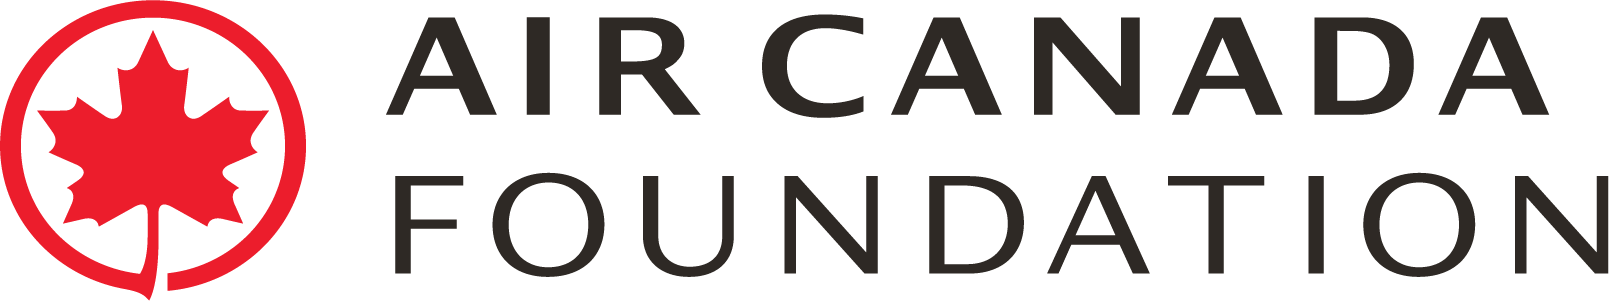 Air Canada Foundation.